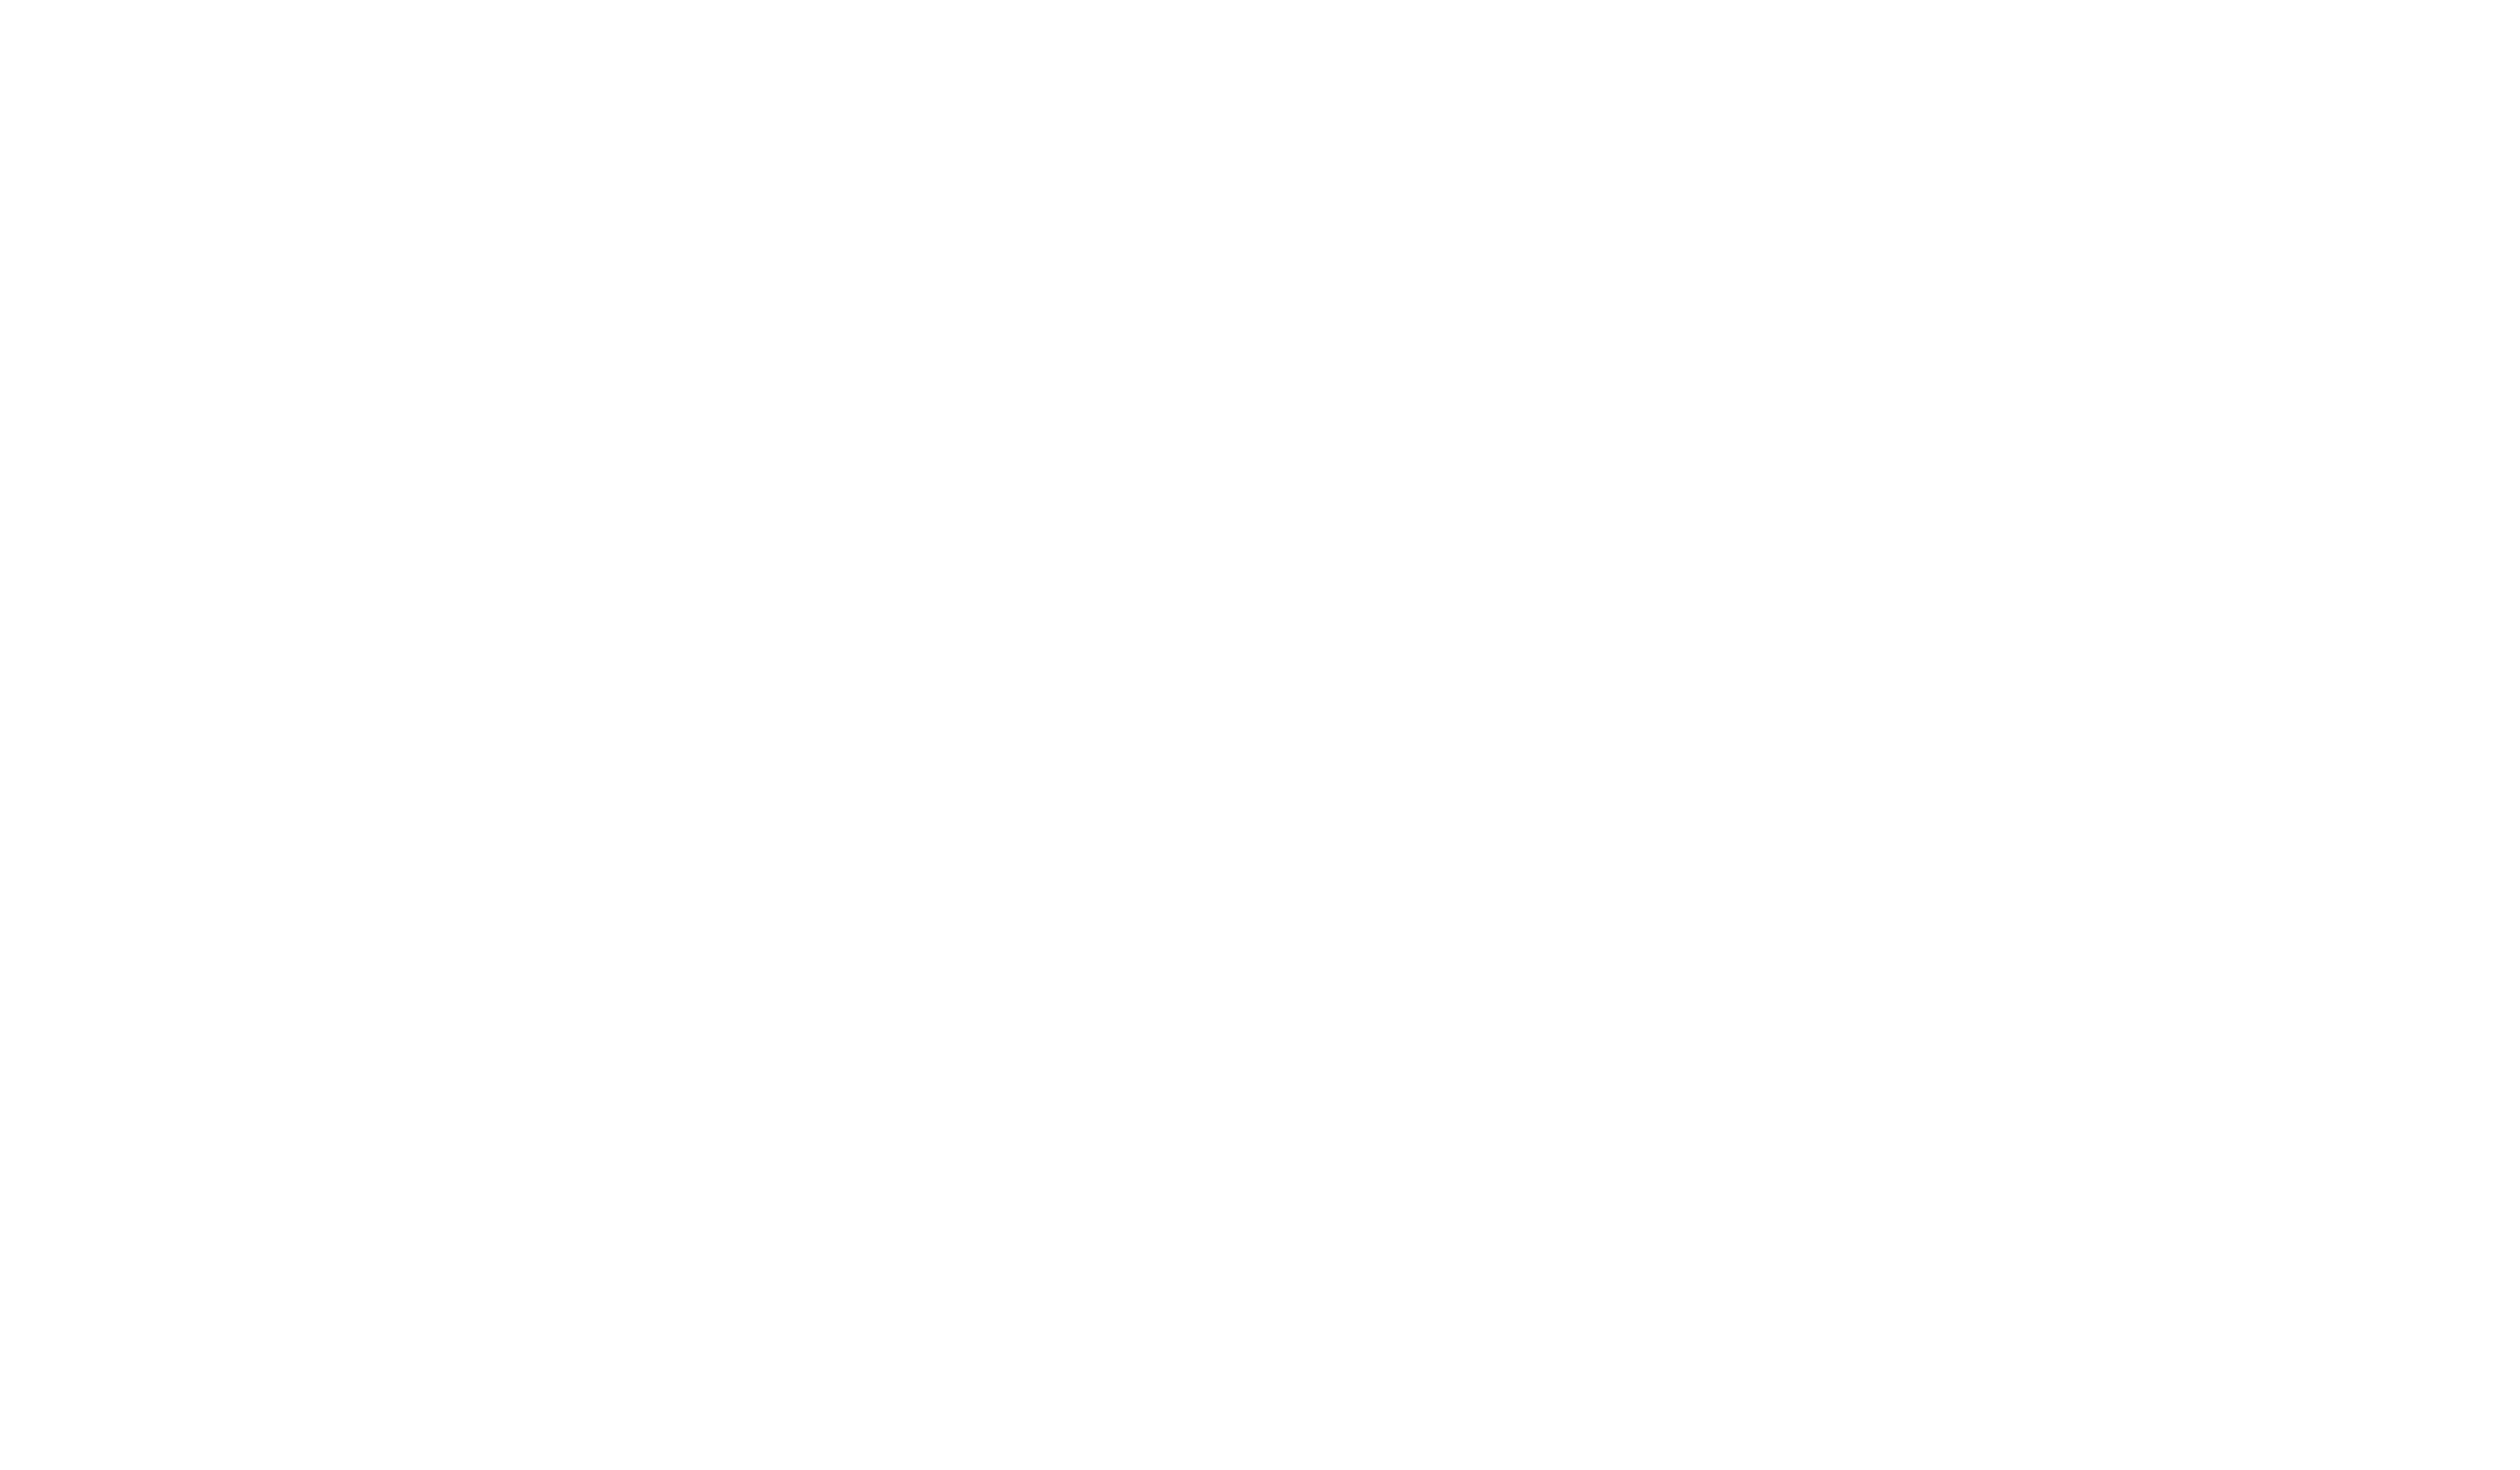 Flyttemateriell.no